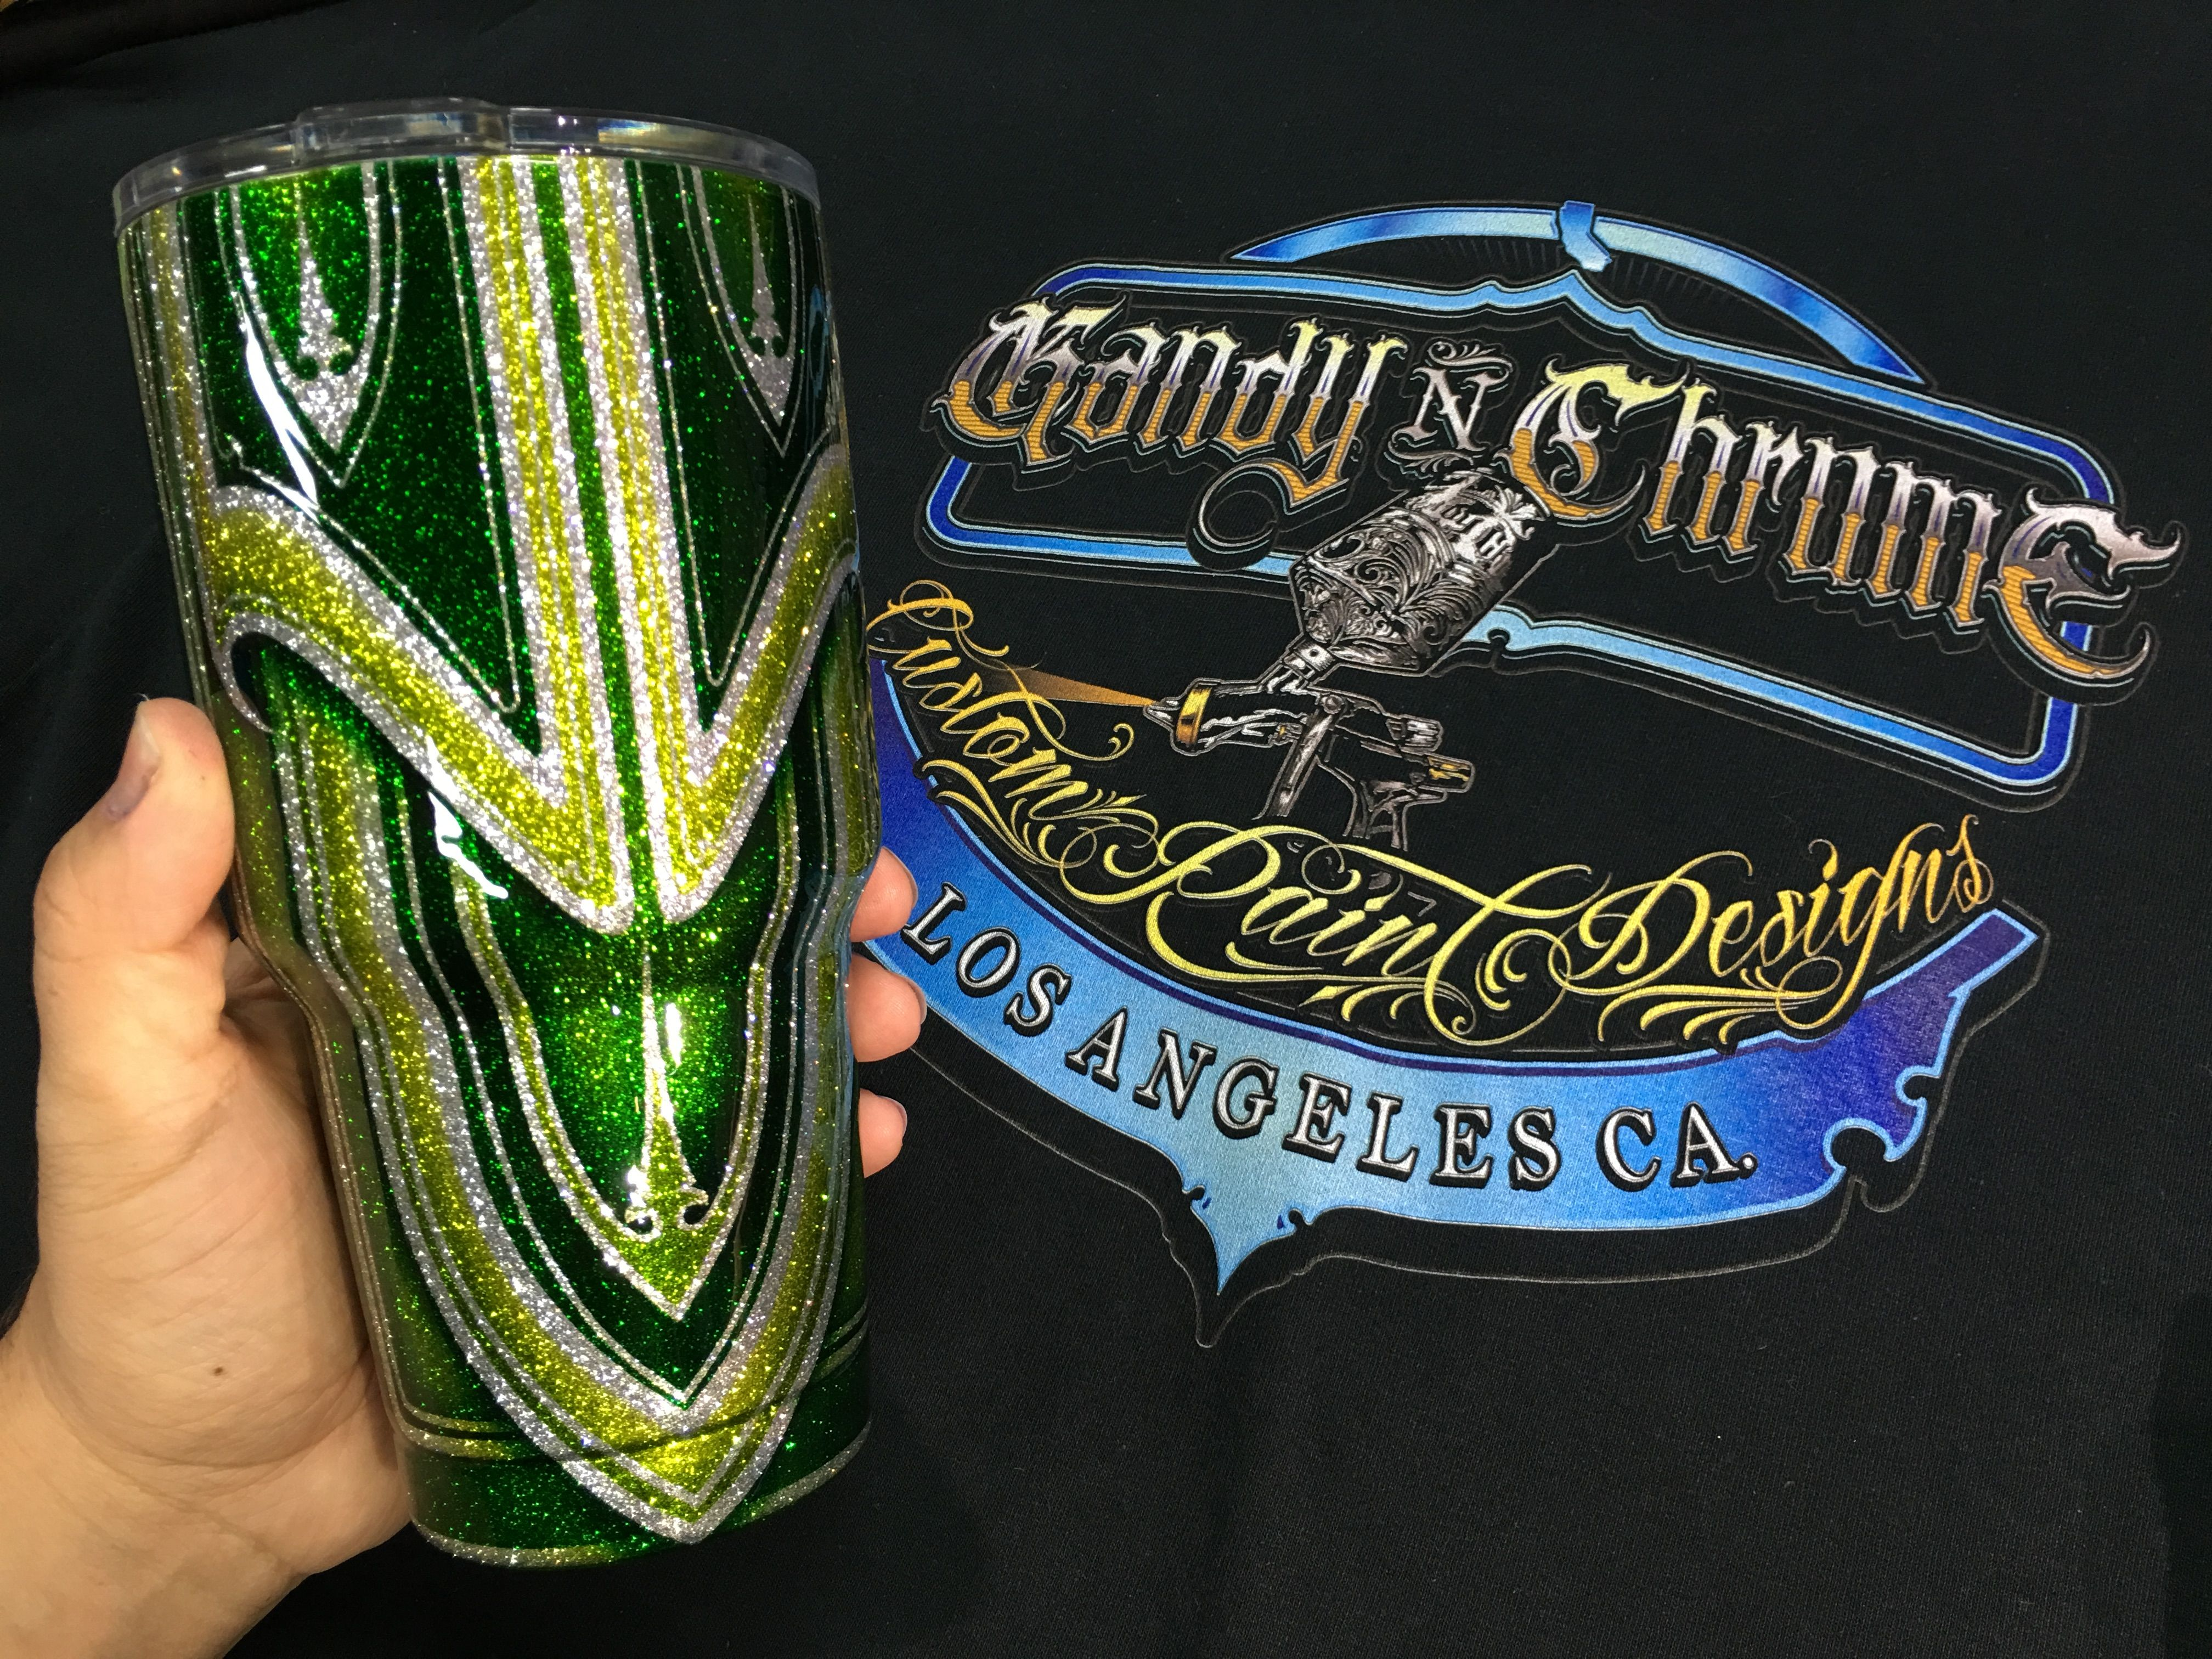 Kustom painted yeti style cups painted with House of Kolor clears kandies and flakes. For custom Kolor combinations let me know the kolors of your choice in the note areas when ordering.